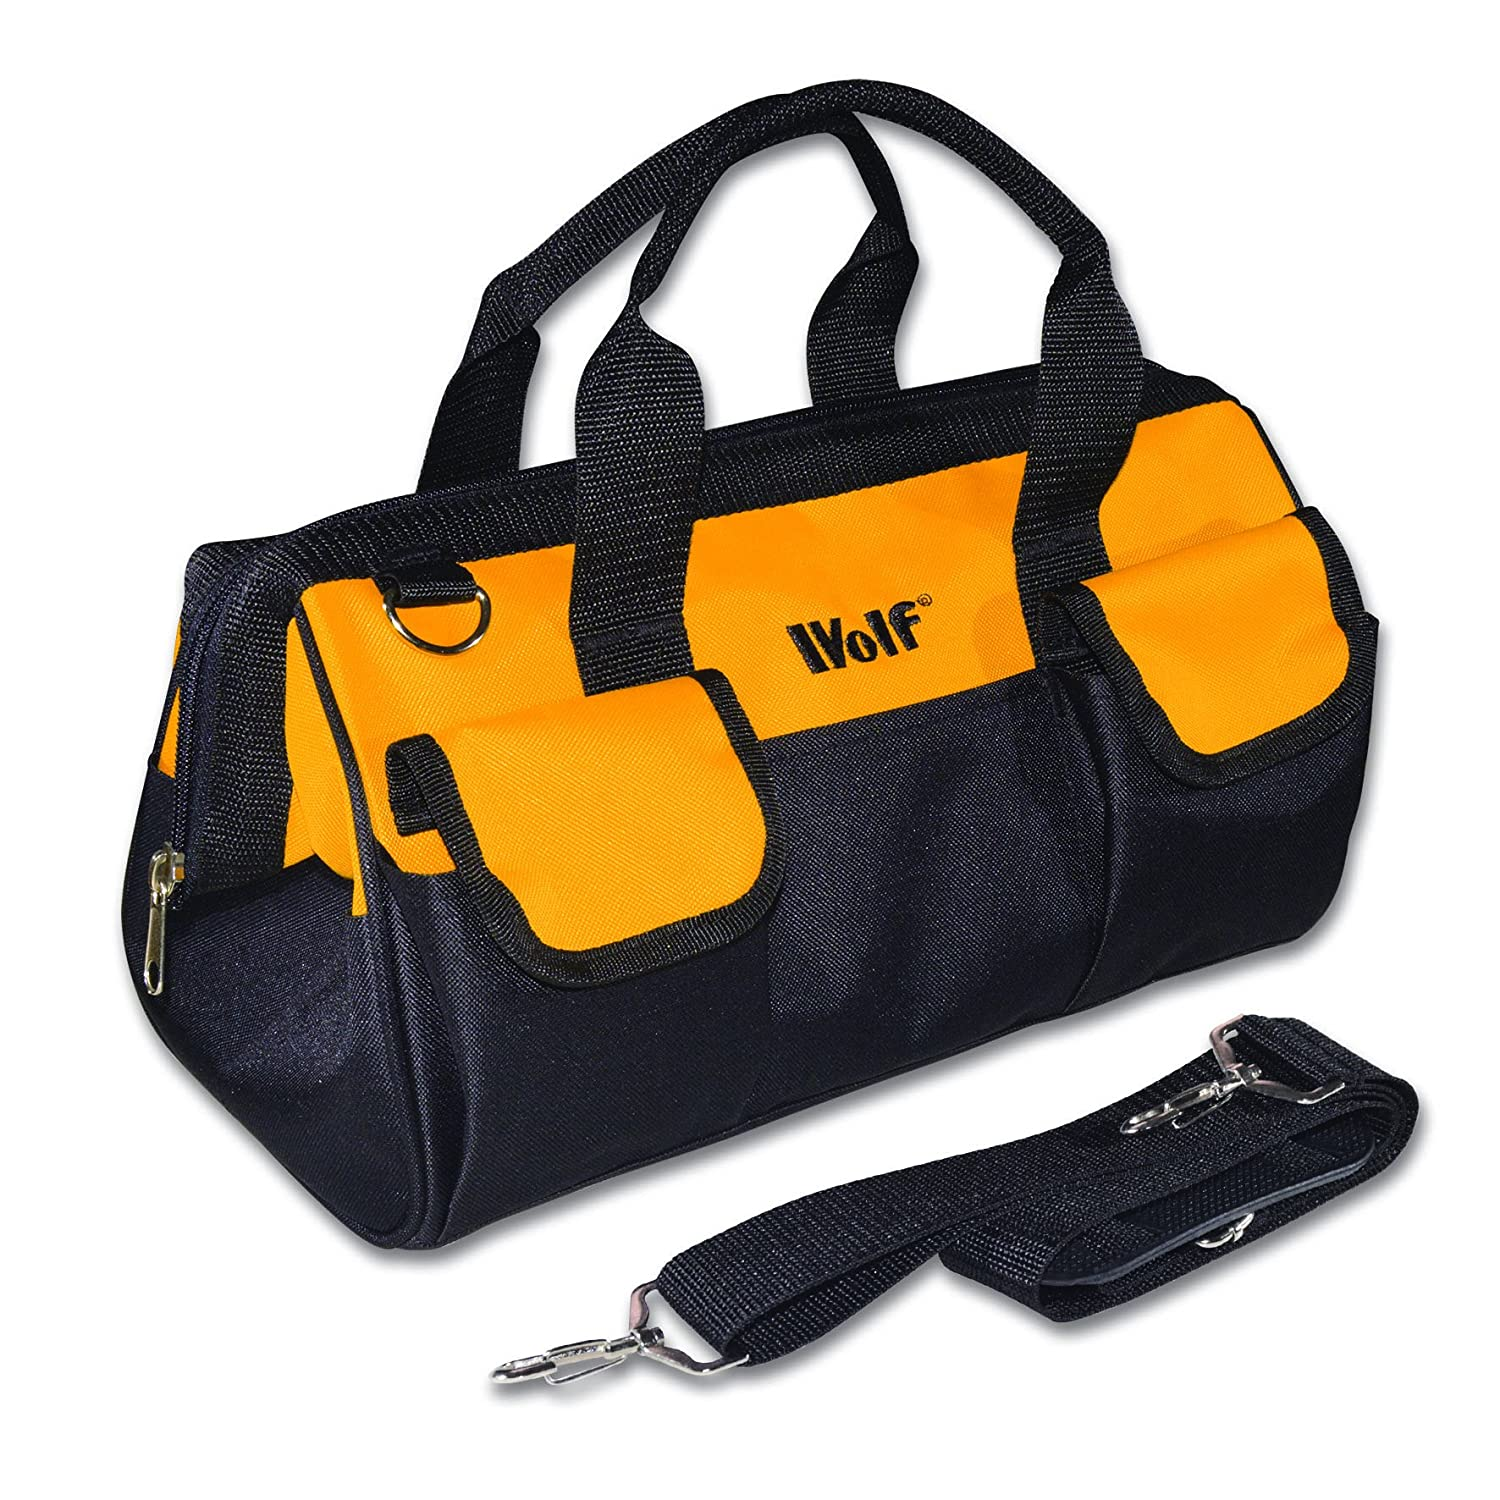 Wolf Heavy Duty Strong Medium Tool Bag Storage Multi Purpose With External Pockets Internal Pouches Shoulder Strap Zip Closing Amazoncouk DIY